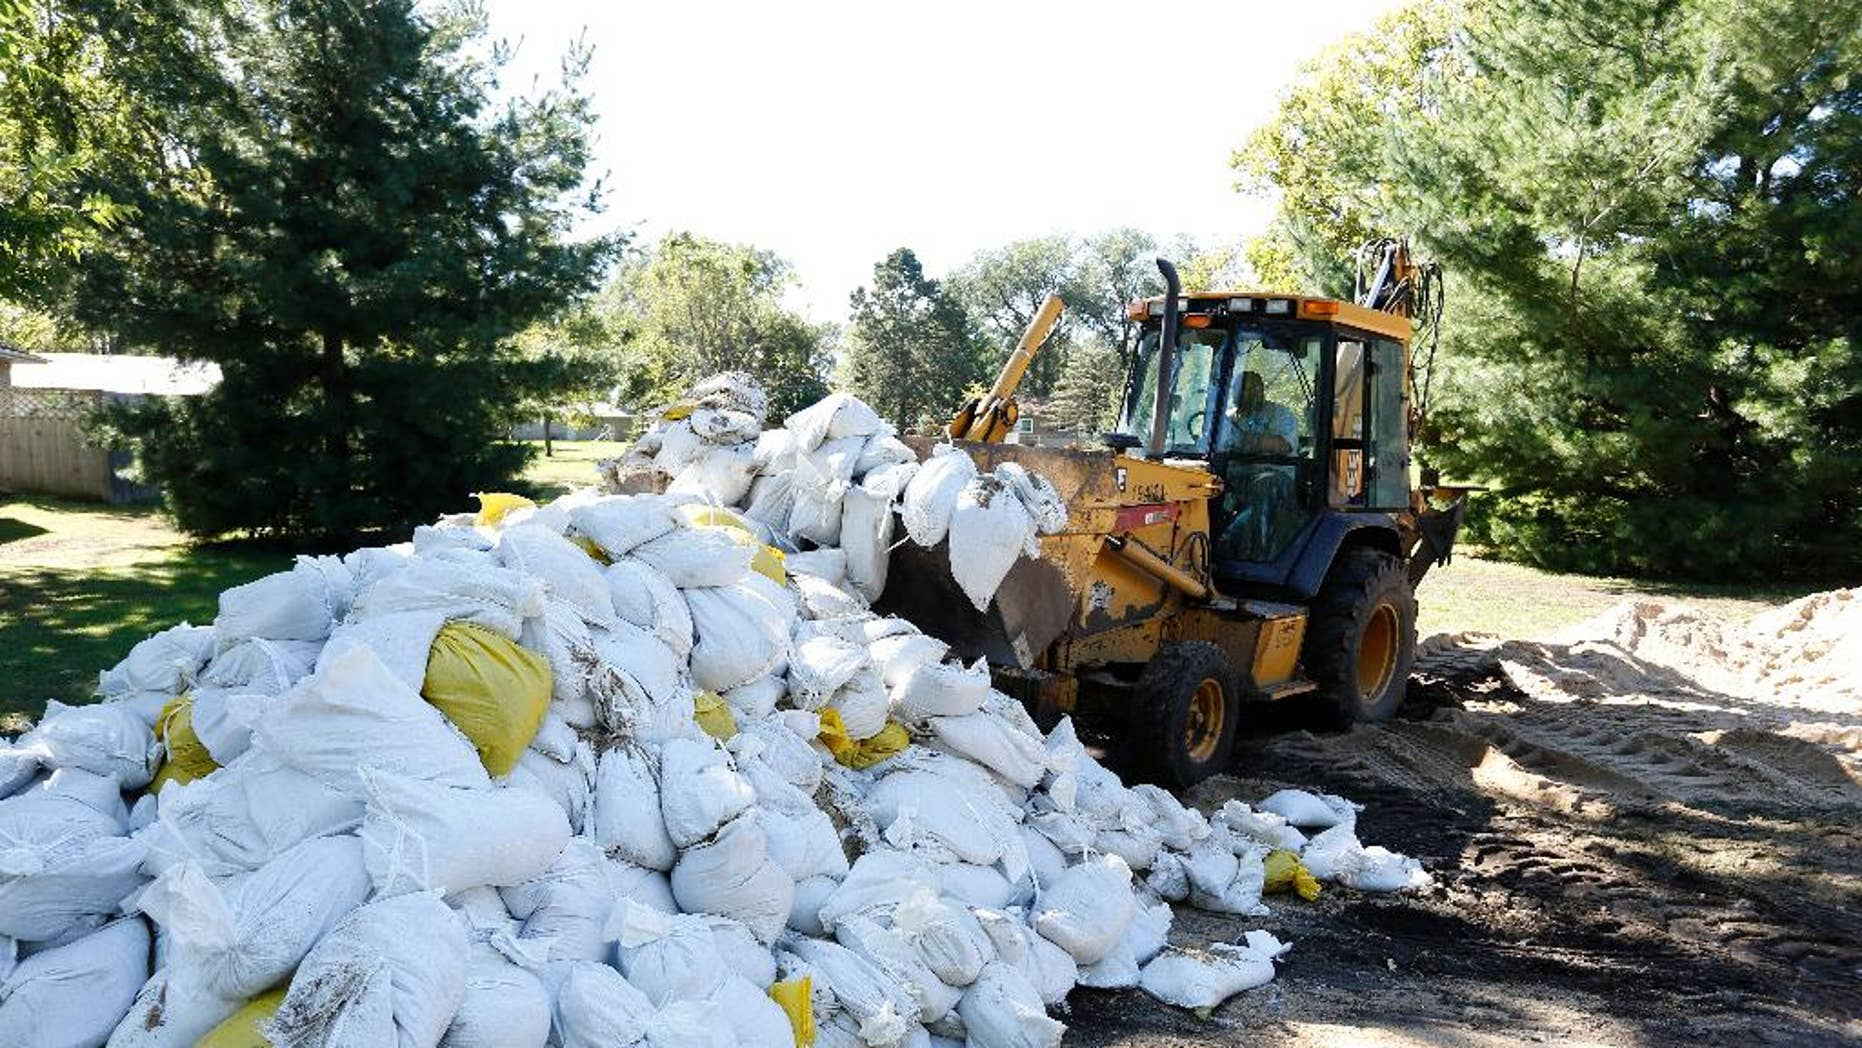 A Waterloo City worker removes sandbags piled up on Belle Street after the Cedar River receded from homes in the area Monday, Sept. 26, 2016, in Cedar Falls, Iowa. (Matthew Putney/The Waterloo Courier via AP)